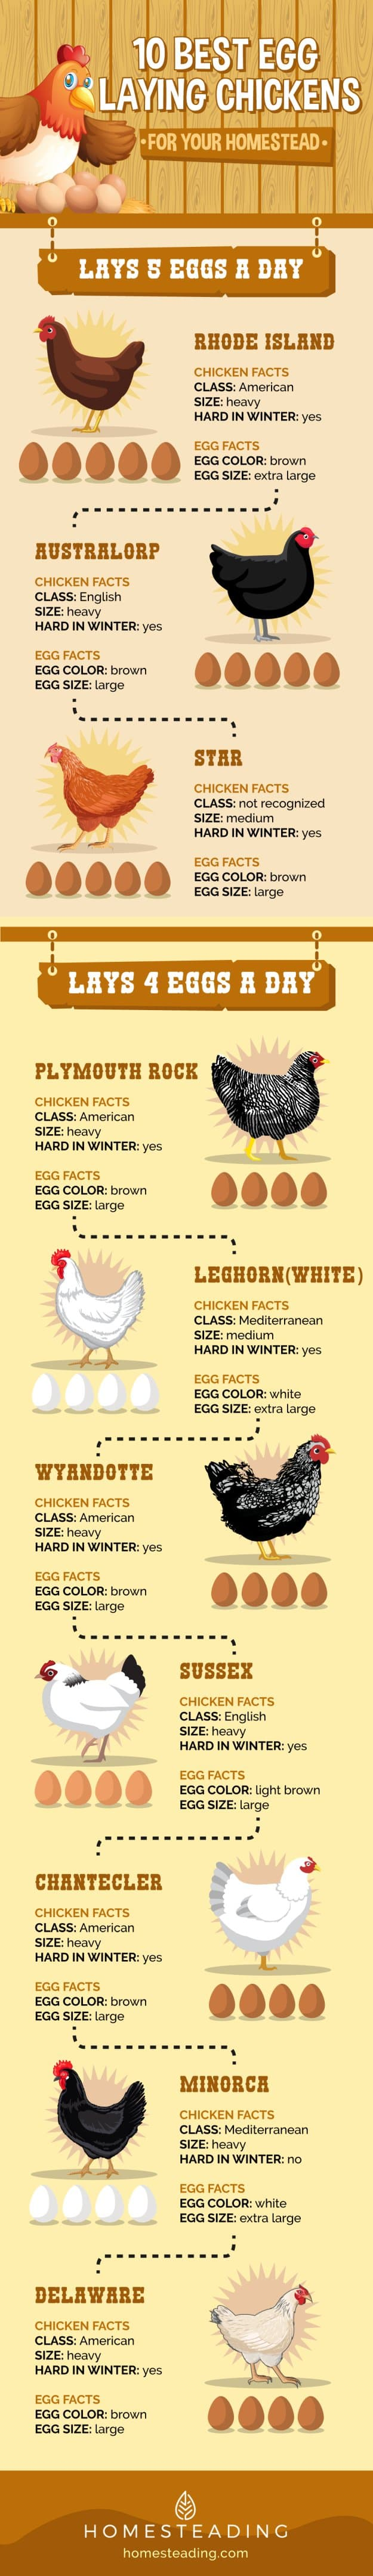 10 Best Egg Laying Chickens Infographic